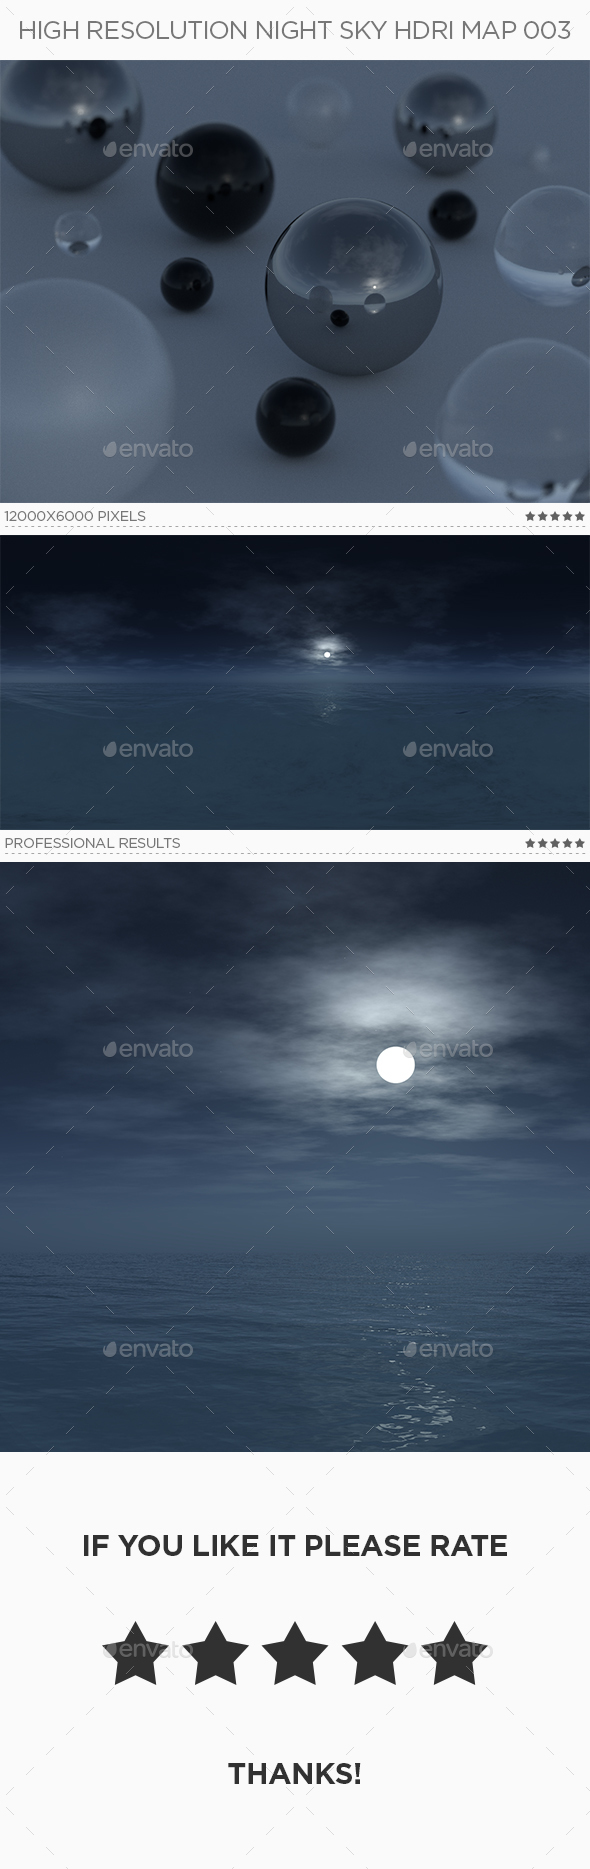 High Resolution Night Sky HDRi Map 003 - 3DOcean Item for Sale